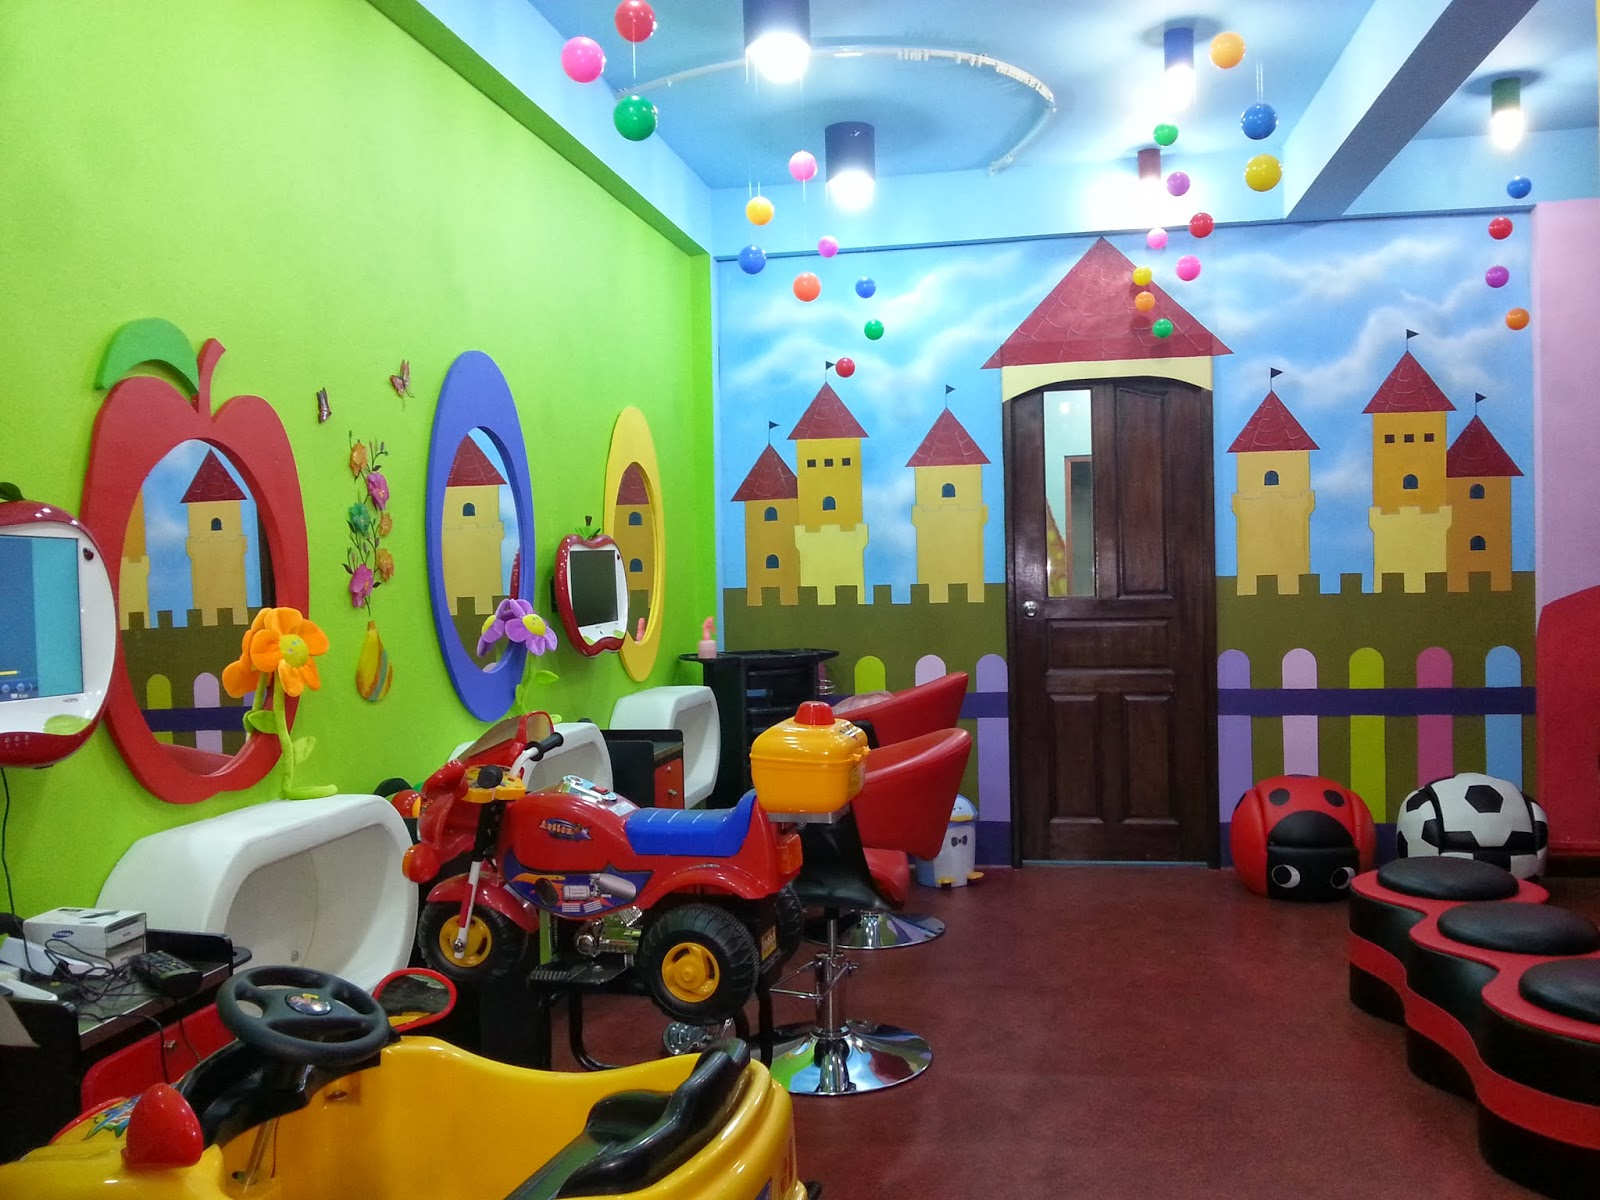 Wondrous chubby cheeks kokki 39 s style kutz the only for Childrens hair salon